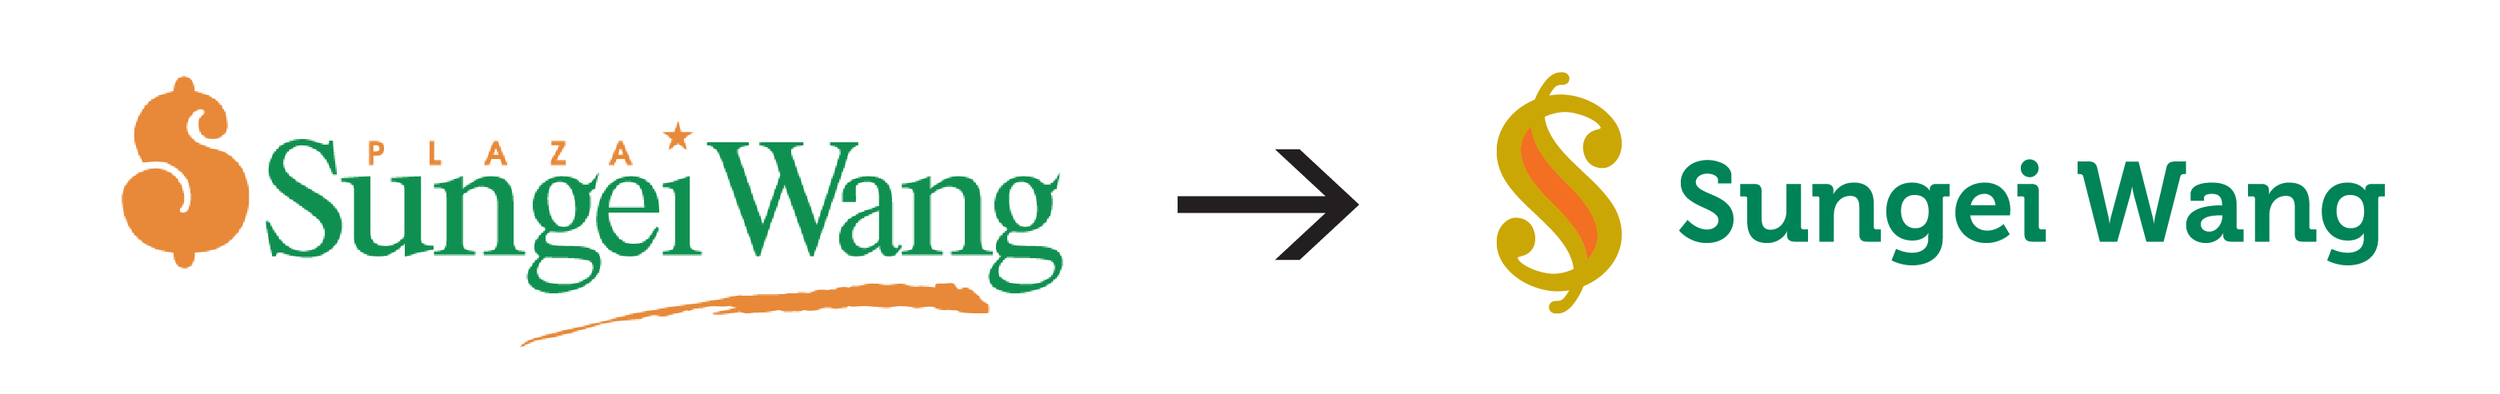 """The dollar sign symbol was simplified and can be read either as the letter 'S' or a dollar sign if one is familiar with the old symbol. In addition, the new symbol is composed of two question marks (one upside down) defining an area of lively energy, a visual interpretation of customers looking for """"All   Kinds of Everything""""—its old slogan, but still relevant today."""